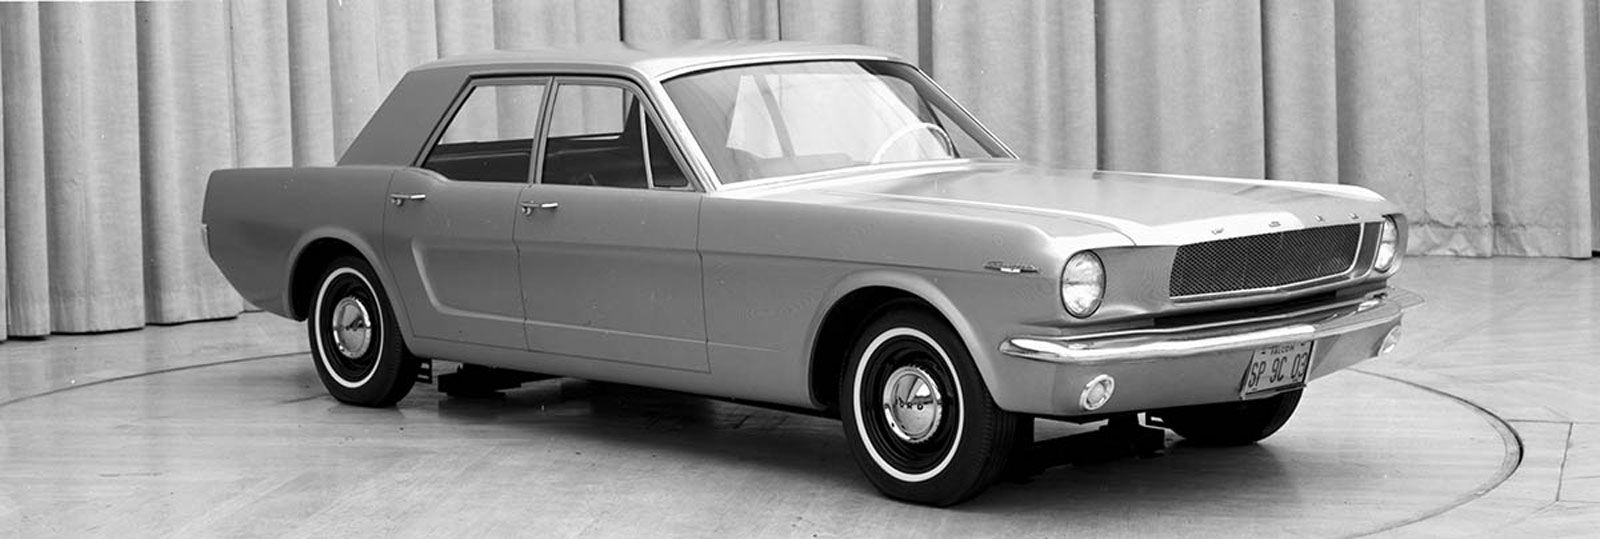 1965 ford mustang 4 door prototype